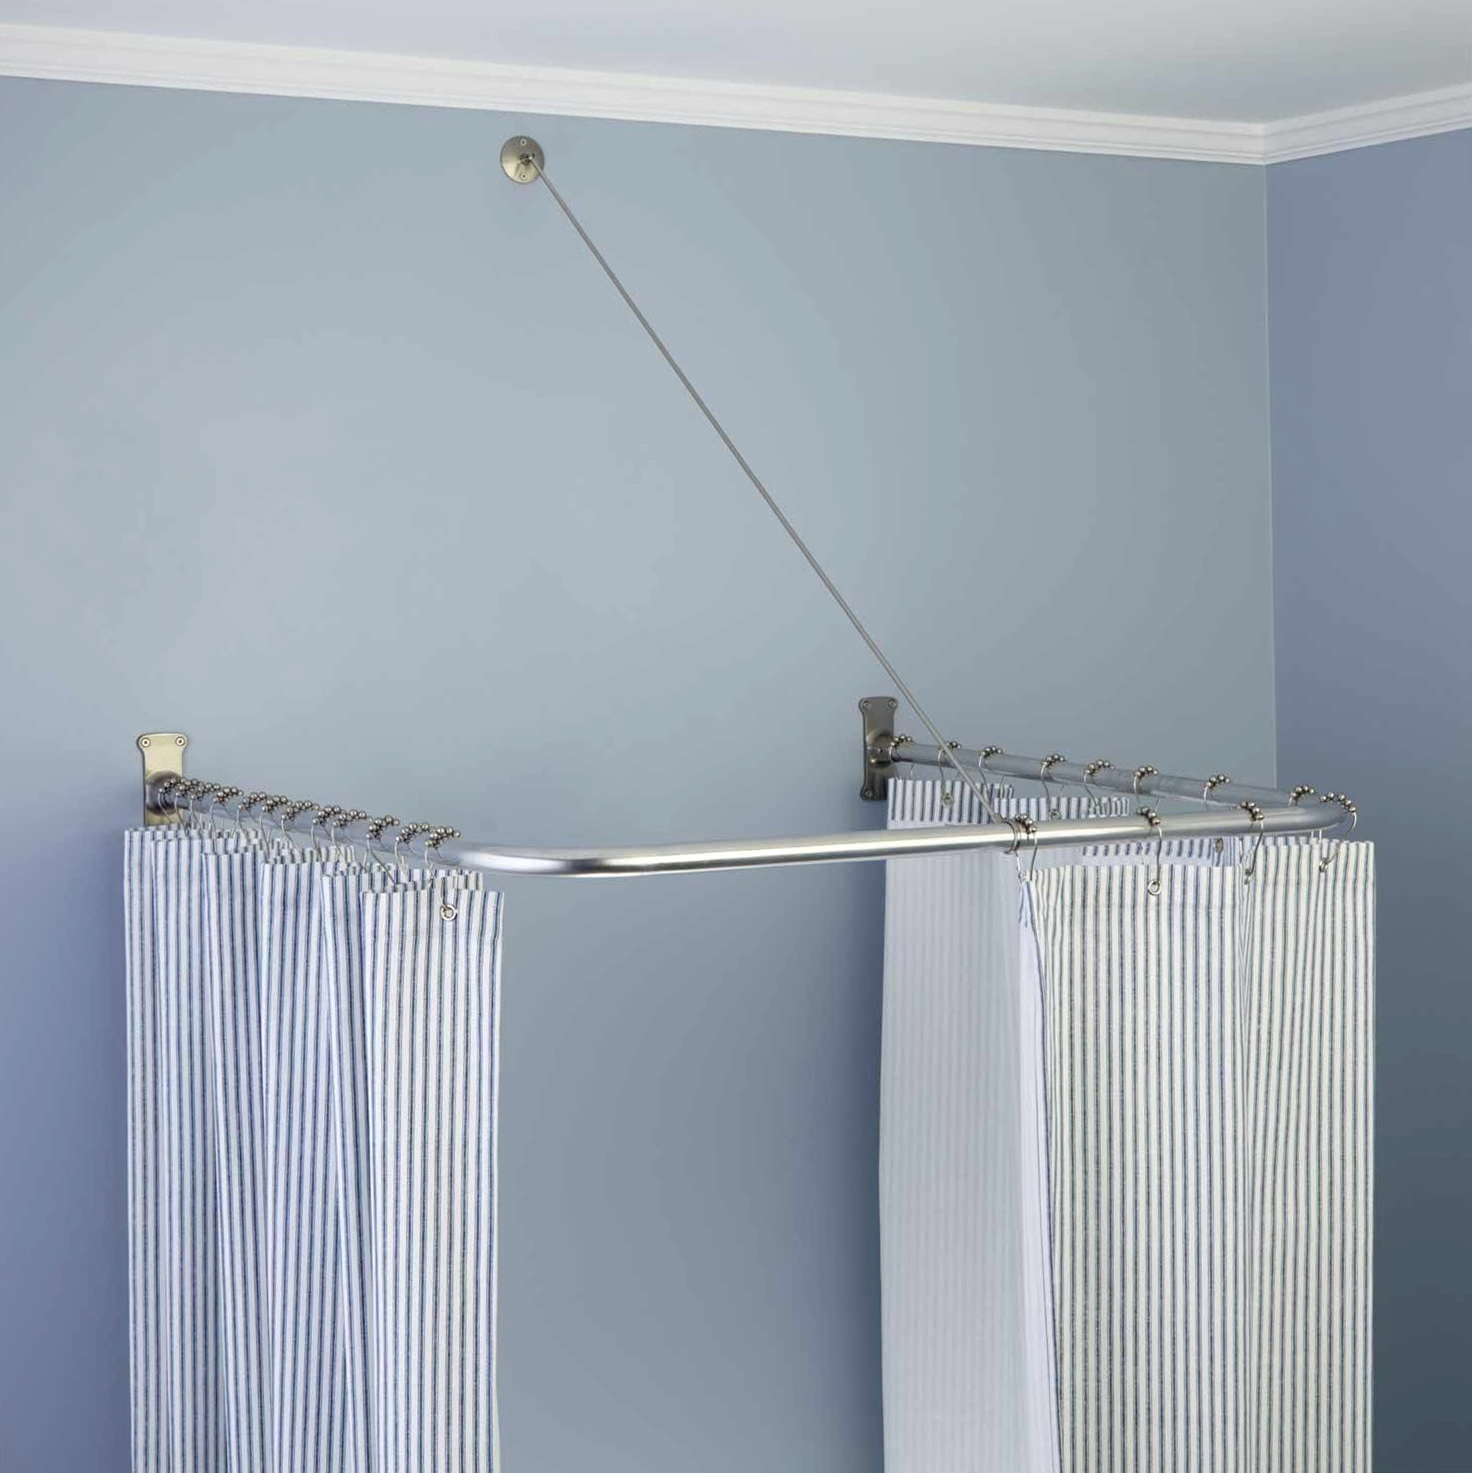 Brushed Nickel Shower Curtain Rod Curved Shower Curtain Rod Brushed Nickel Home Design Ideas